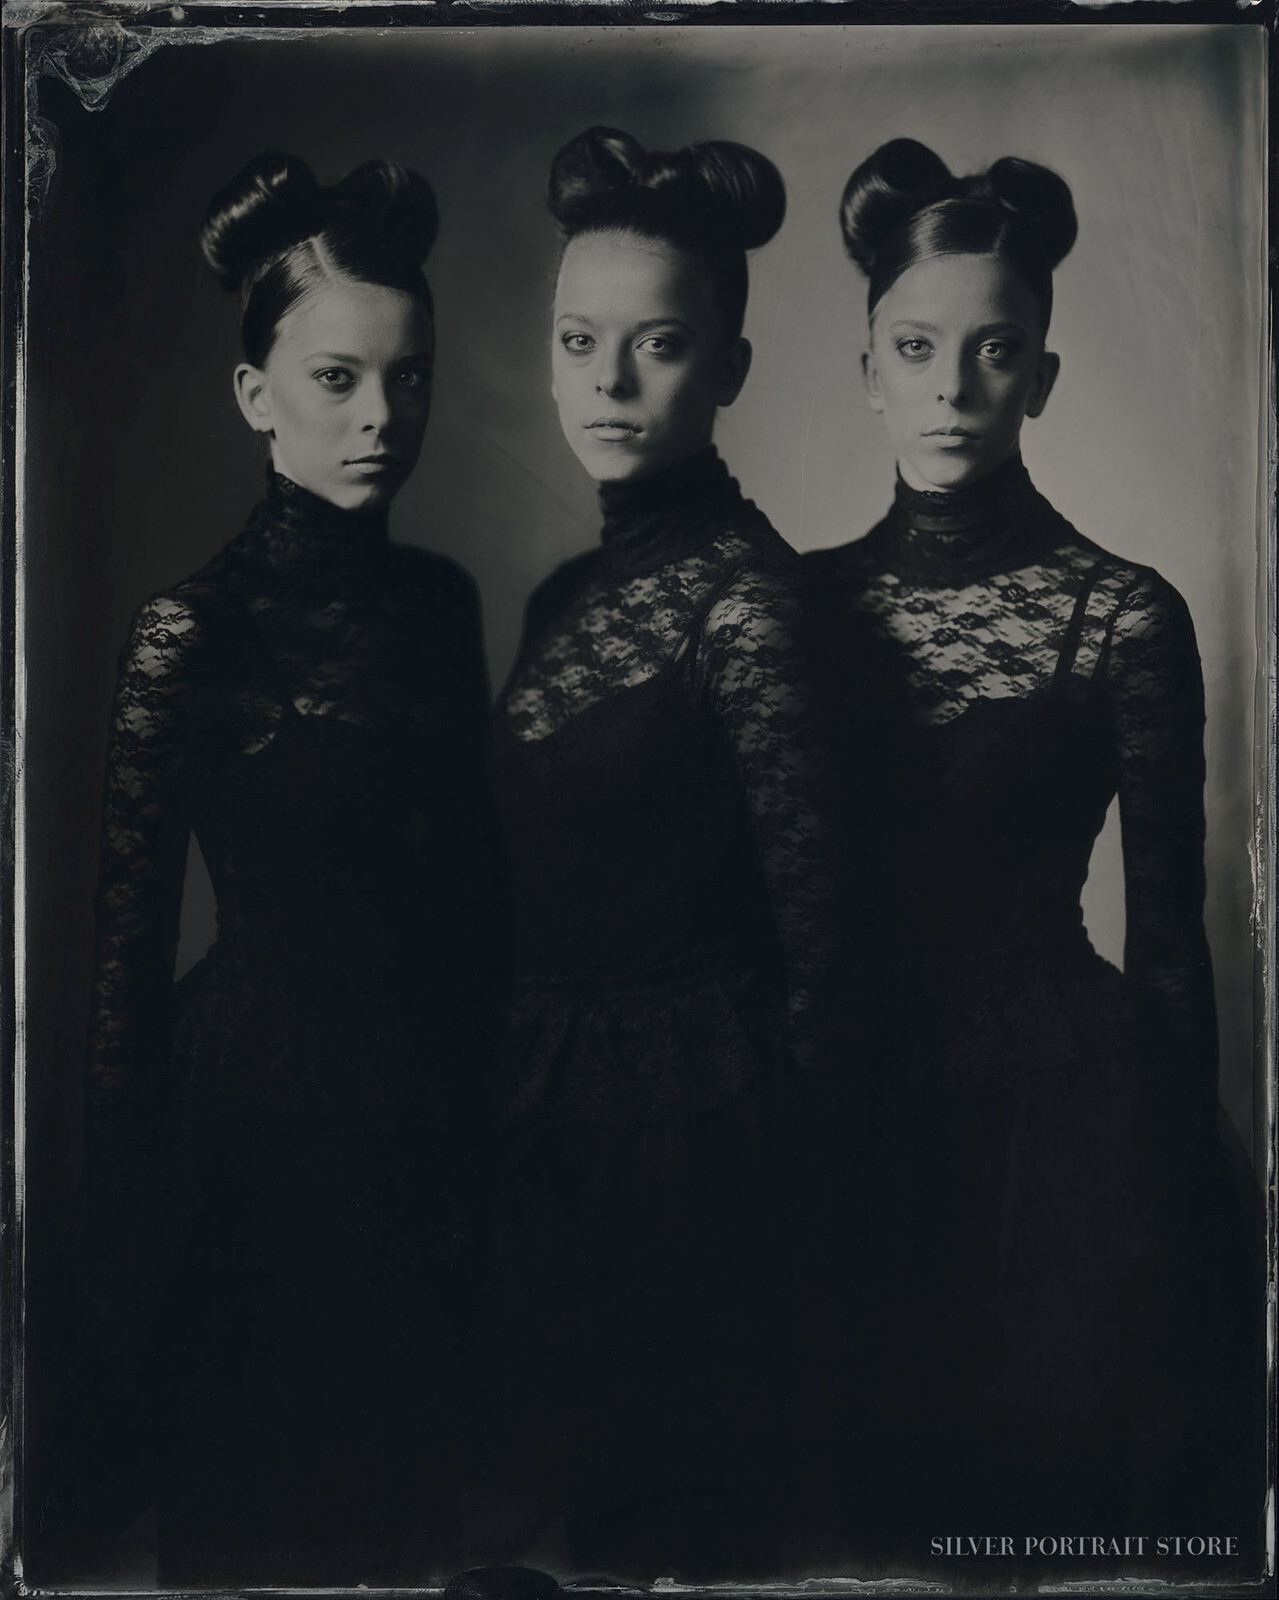 Ellis, Bo & Amy-Silver Portrait Store-Scan from Wet plate collodion-Tintype 20 x 25 cm